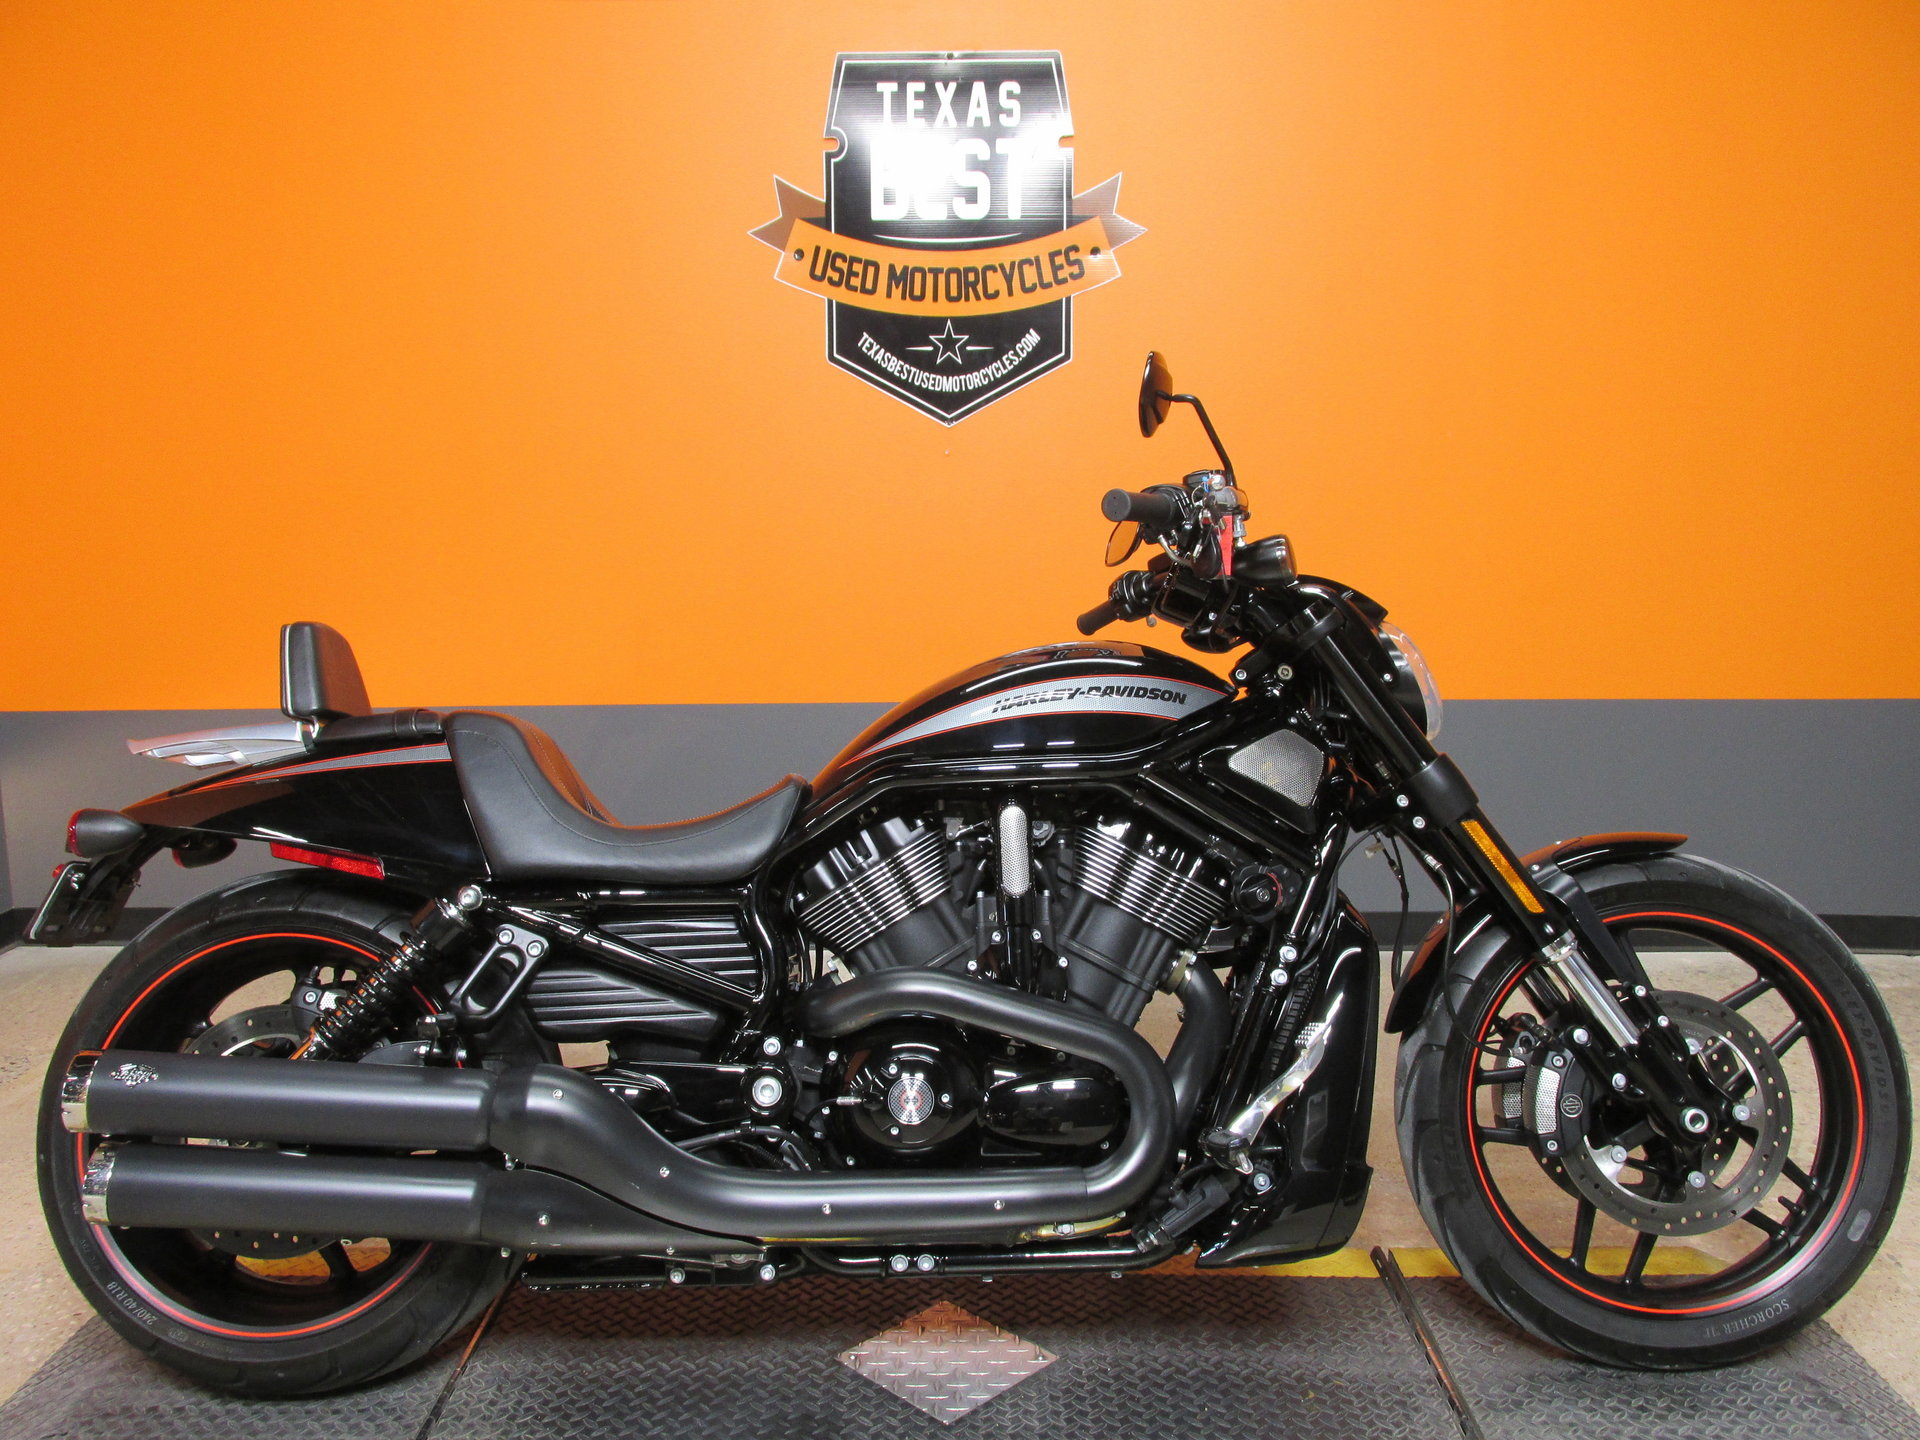 2014 harley davidson v rod night rod special vrscdx for sale 100174 mcg. Black Bedroom Furniture Sets. Home Design Ideas